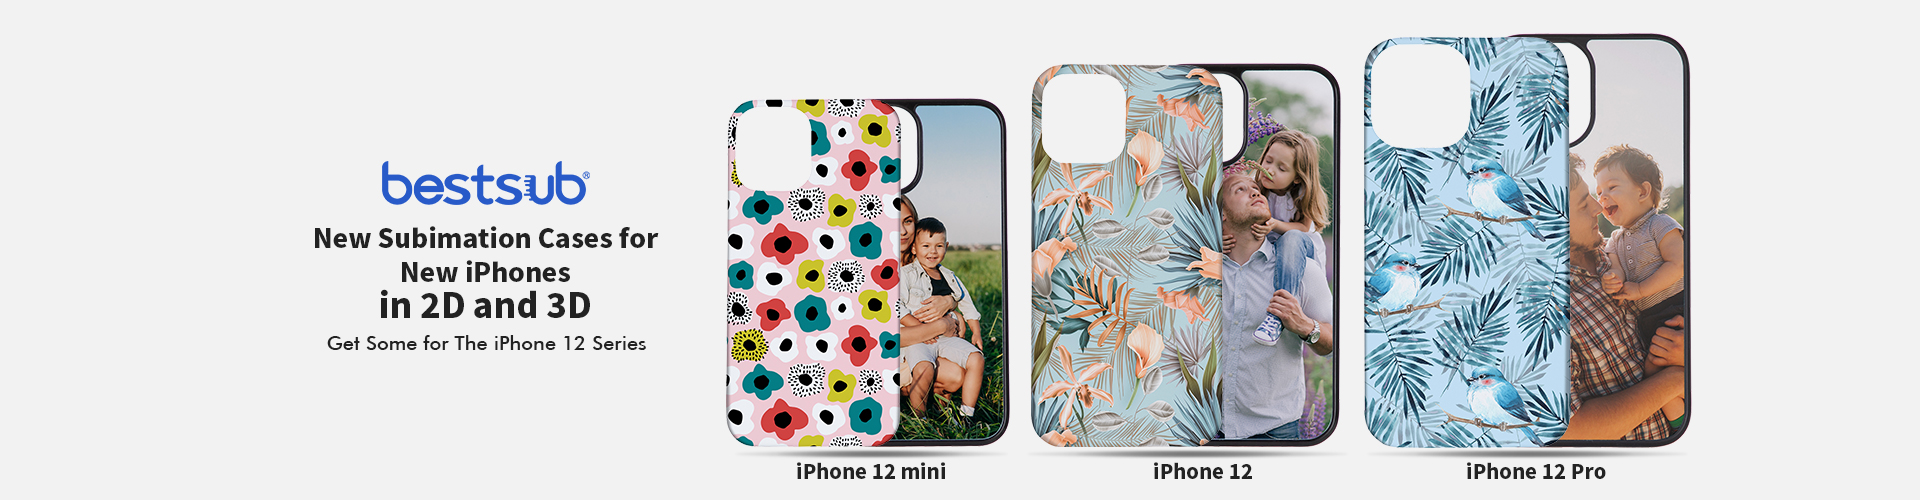 2020-10-12_New_Subimation_Cases_for_New_Phones_in_2D_and_3D_new_web